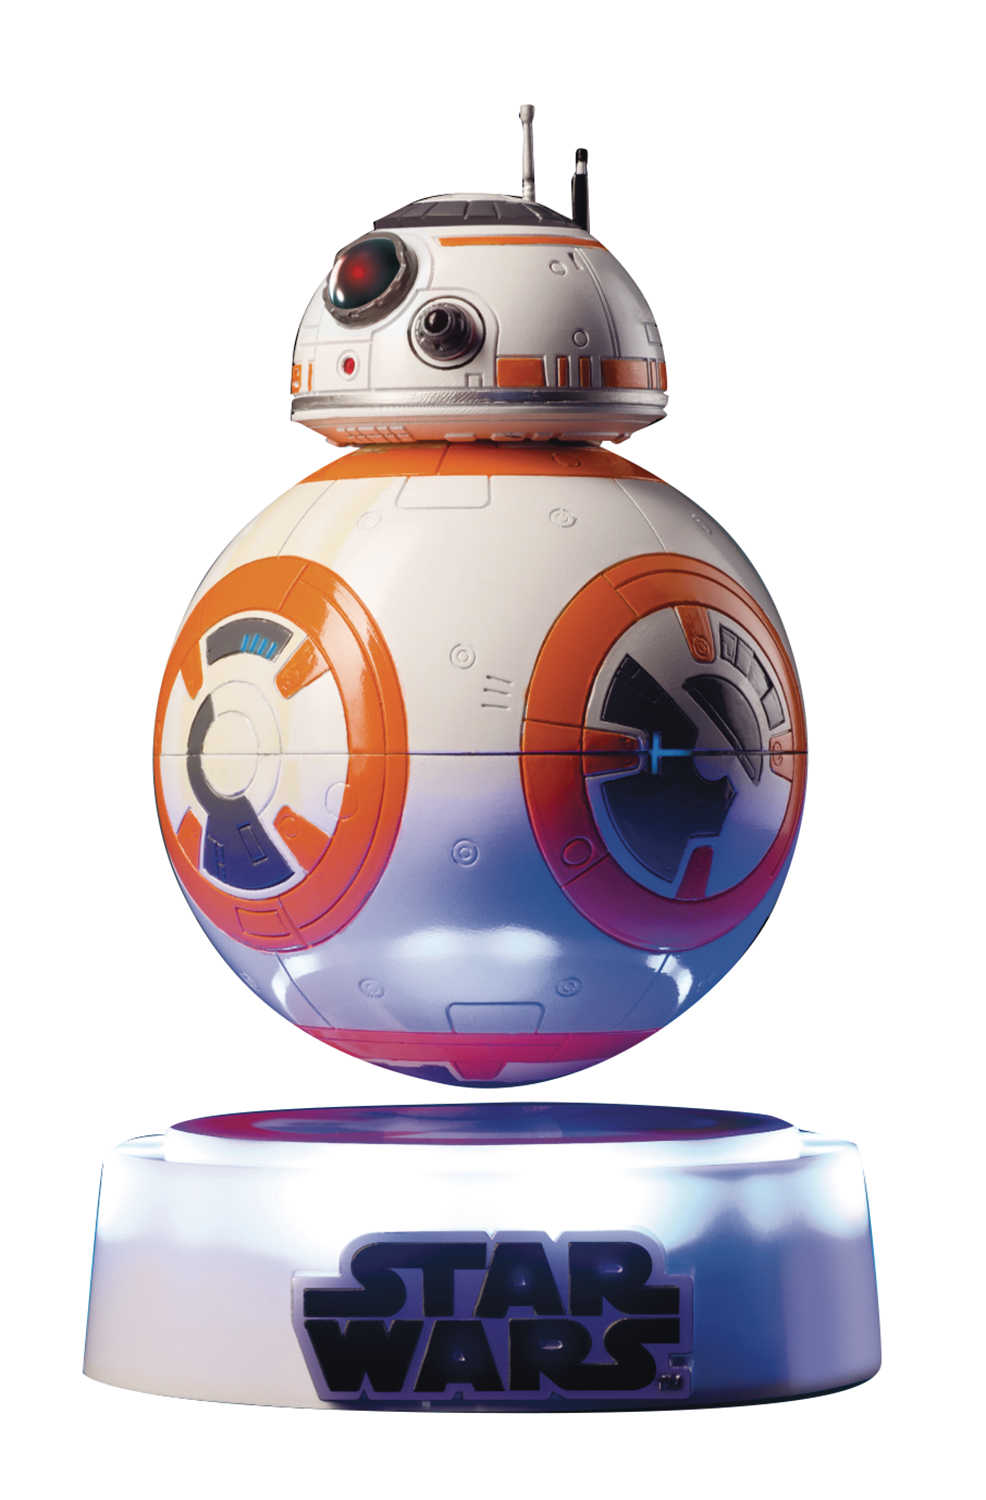 STAR WARS E8 EA-030 BB-8 PX FIG FLOATING VER (Net)